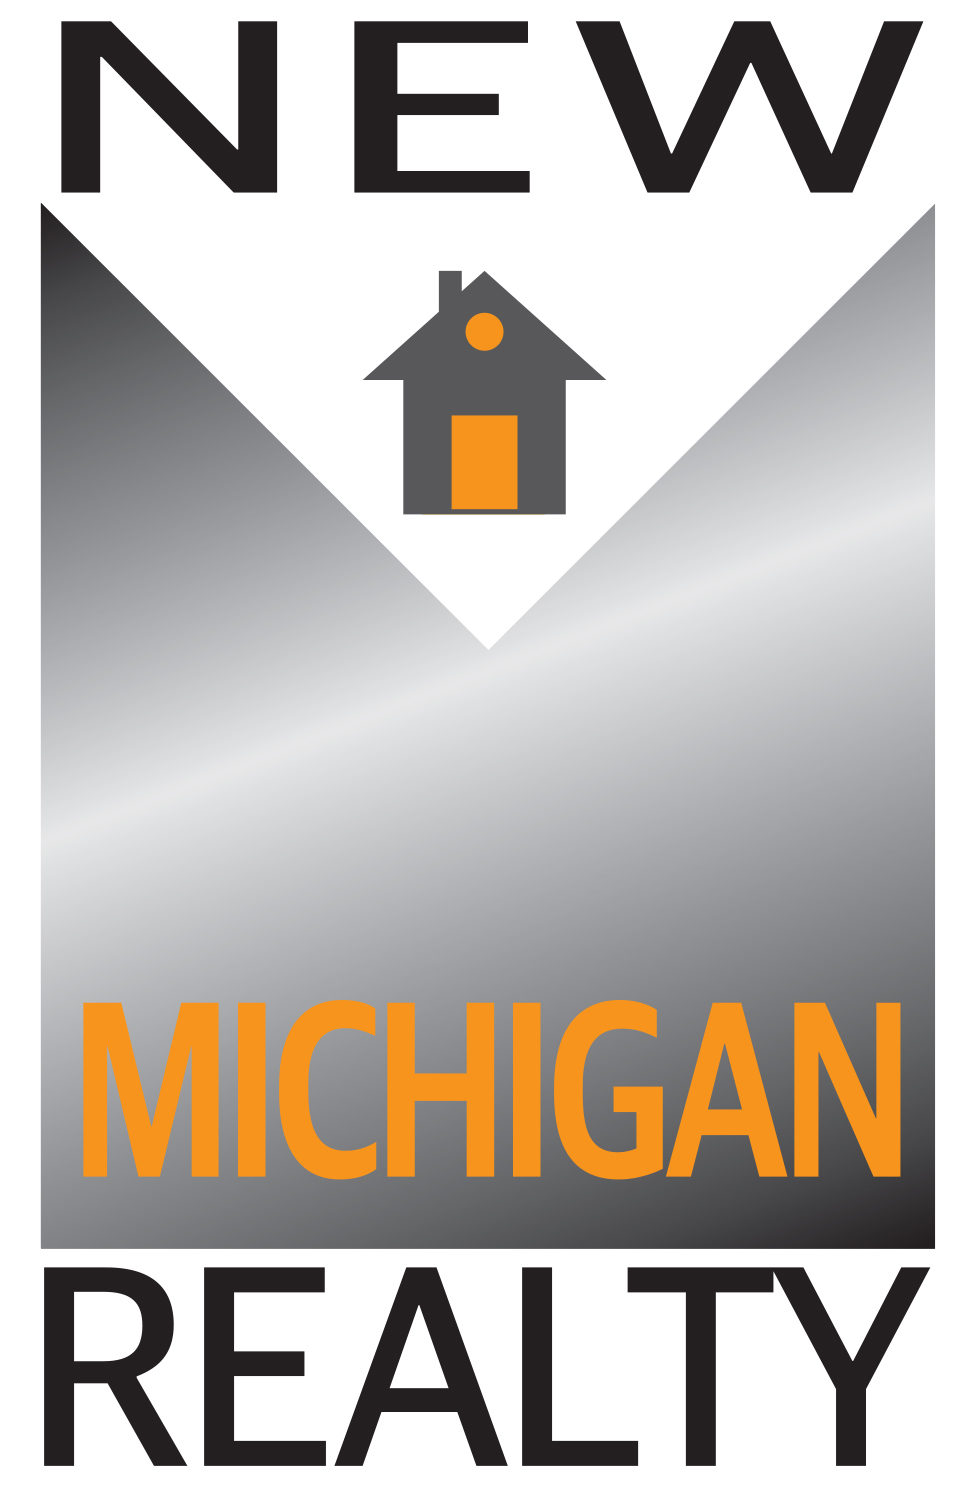 New Michigan Realty